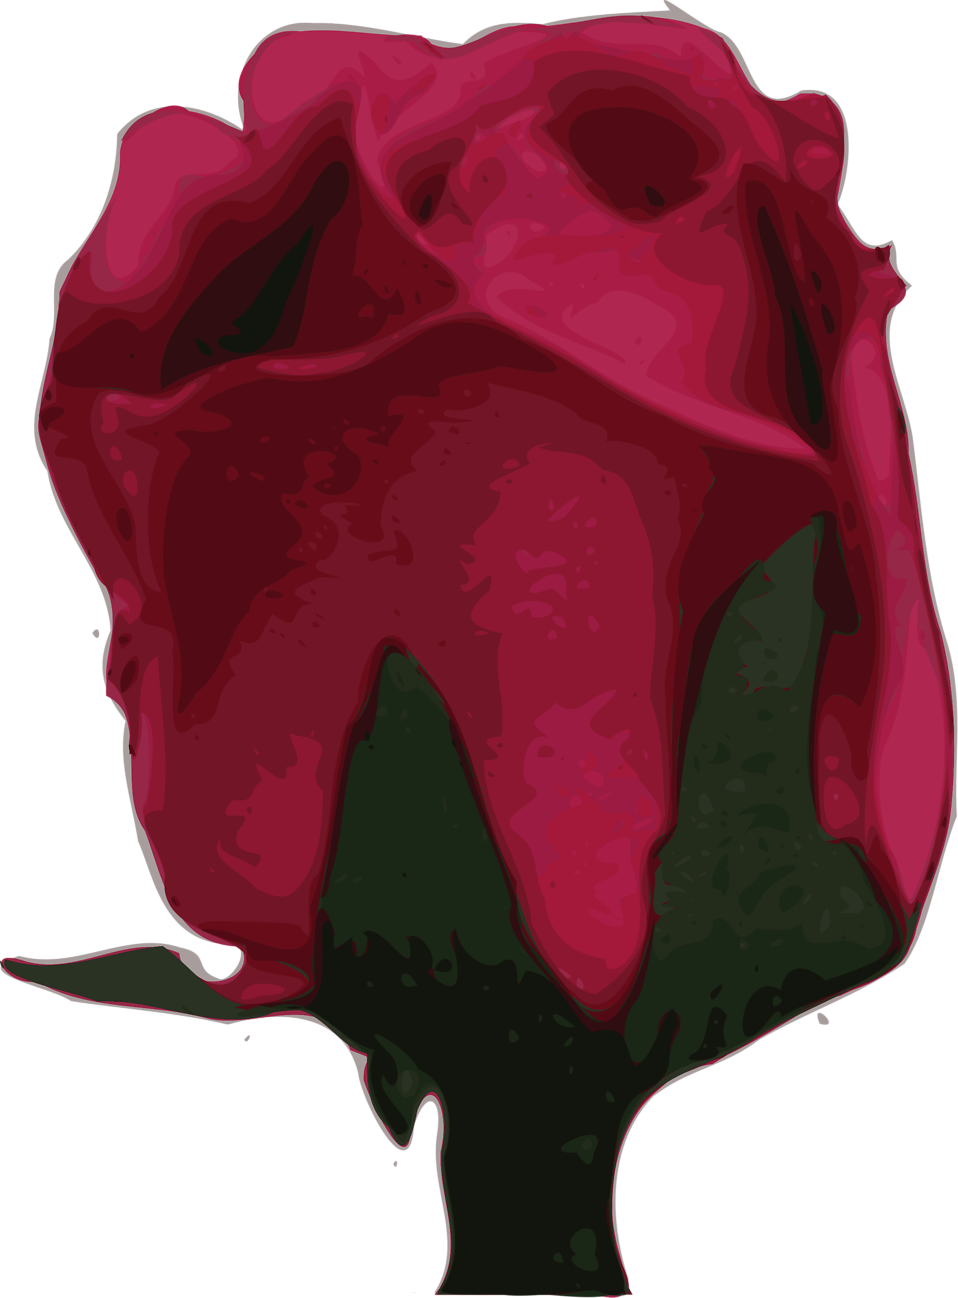 Roses on floor png free. Rose stock photo illustration